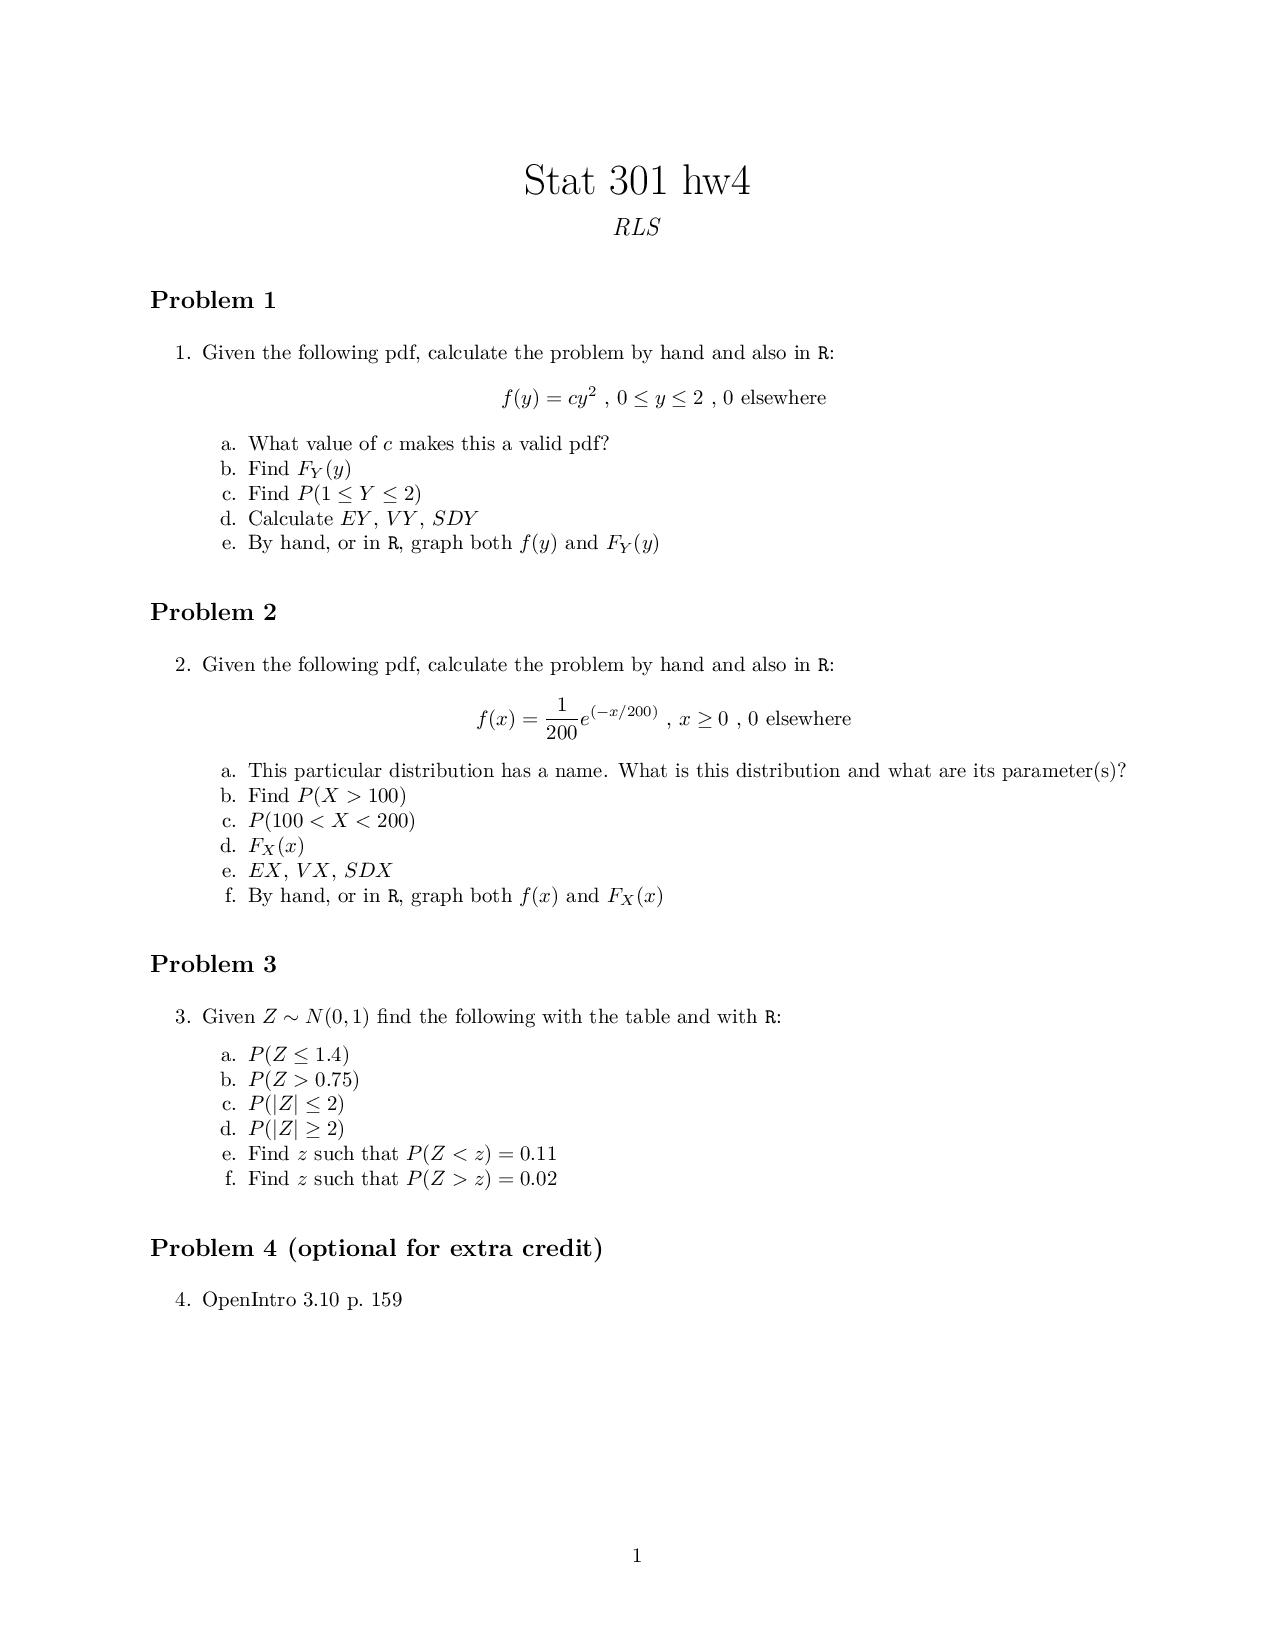 Given The Following Pdf Calculate The Problem By